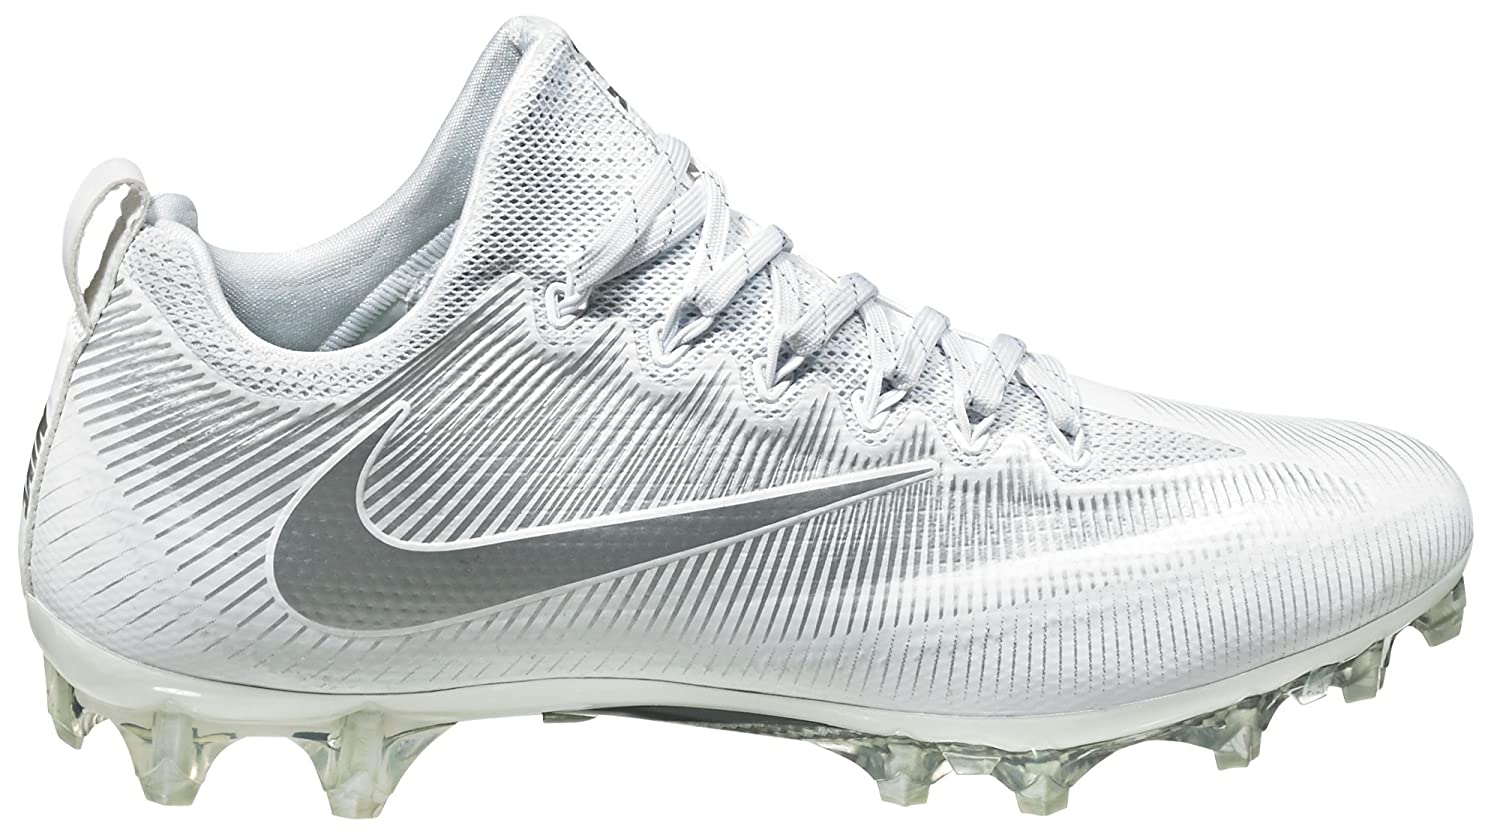 New Nike Vapor Carbon Pro 15 Football Cleat Men/'s 11 Black White Silver 833385